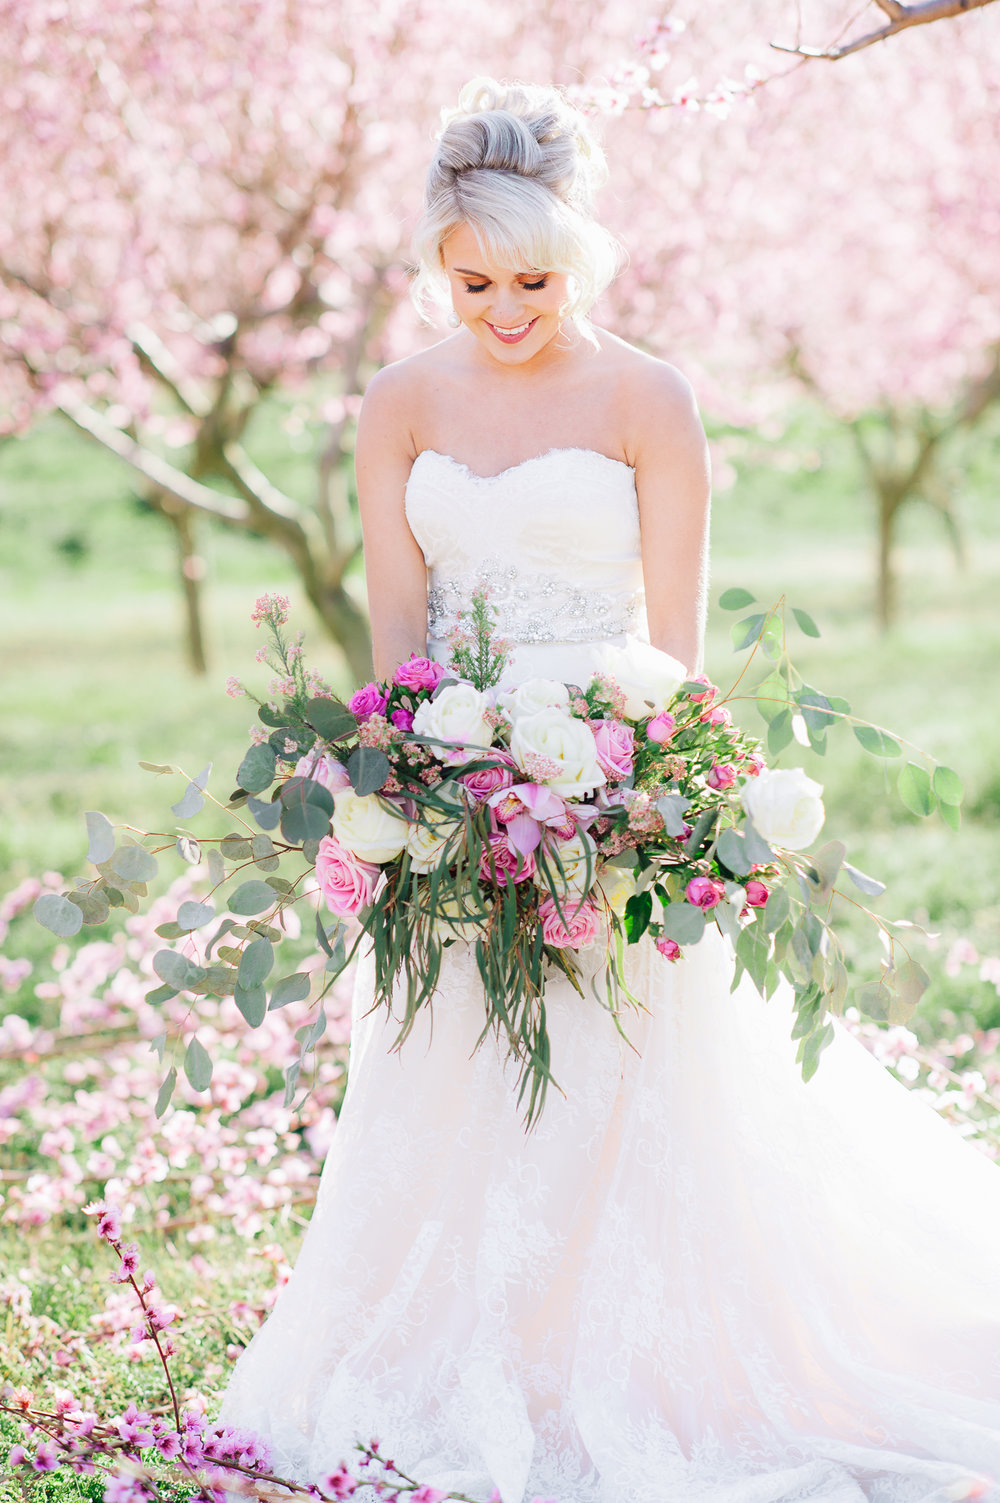 youseephotography_virginia_styledshoot_springwedding_blossoms  (15).jpg